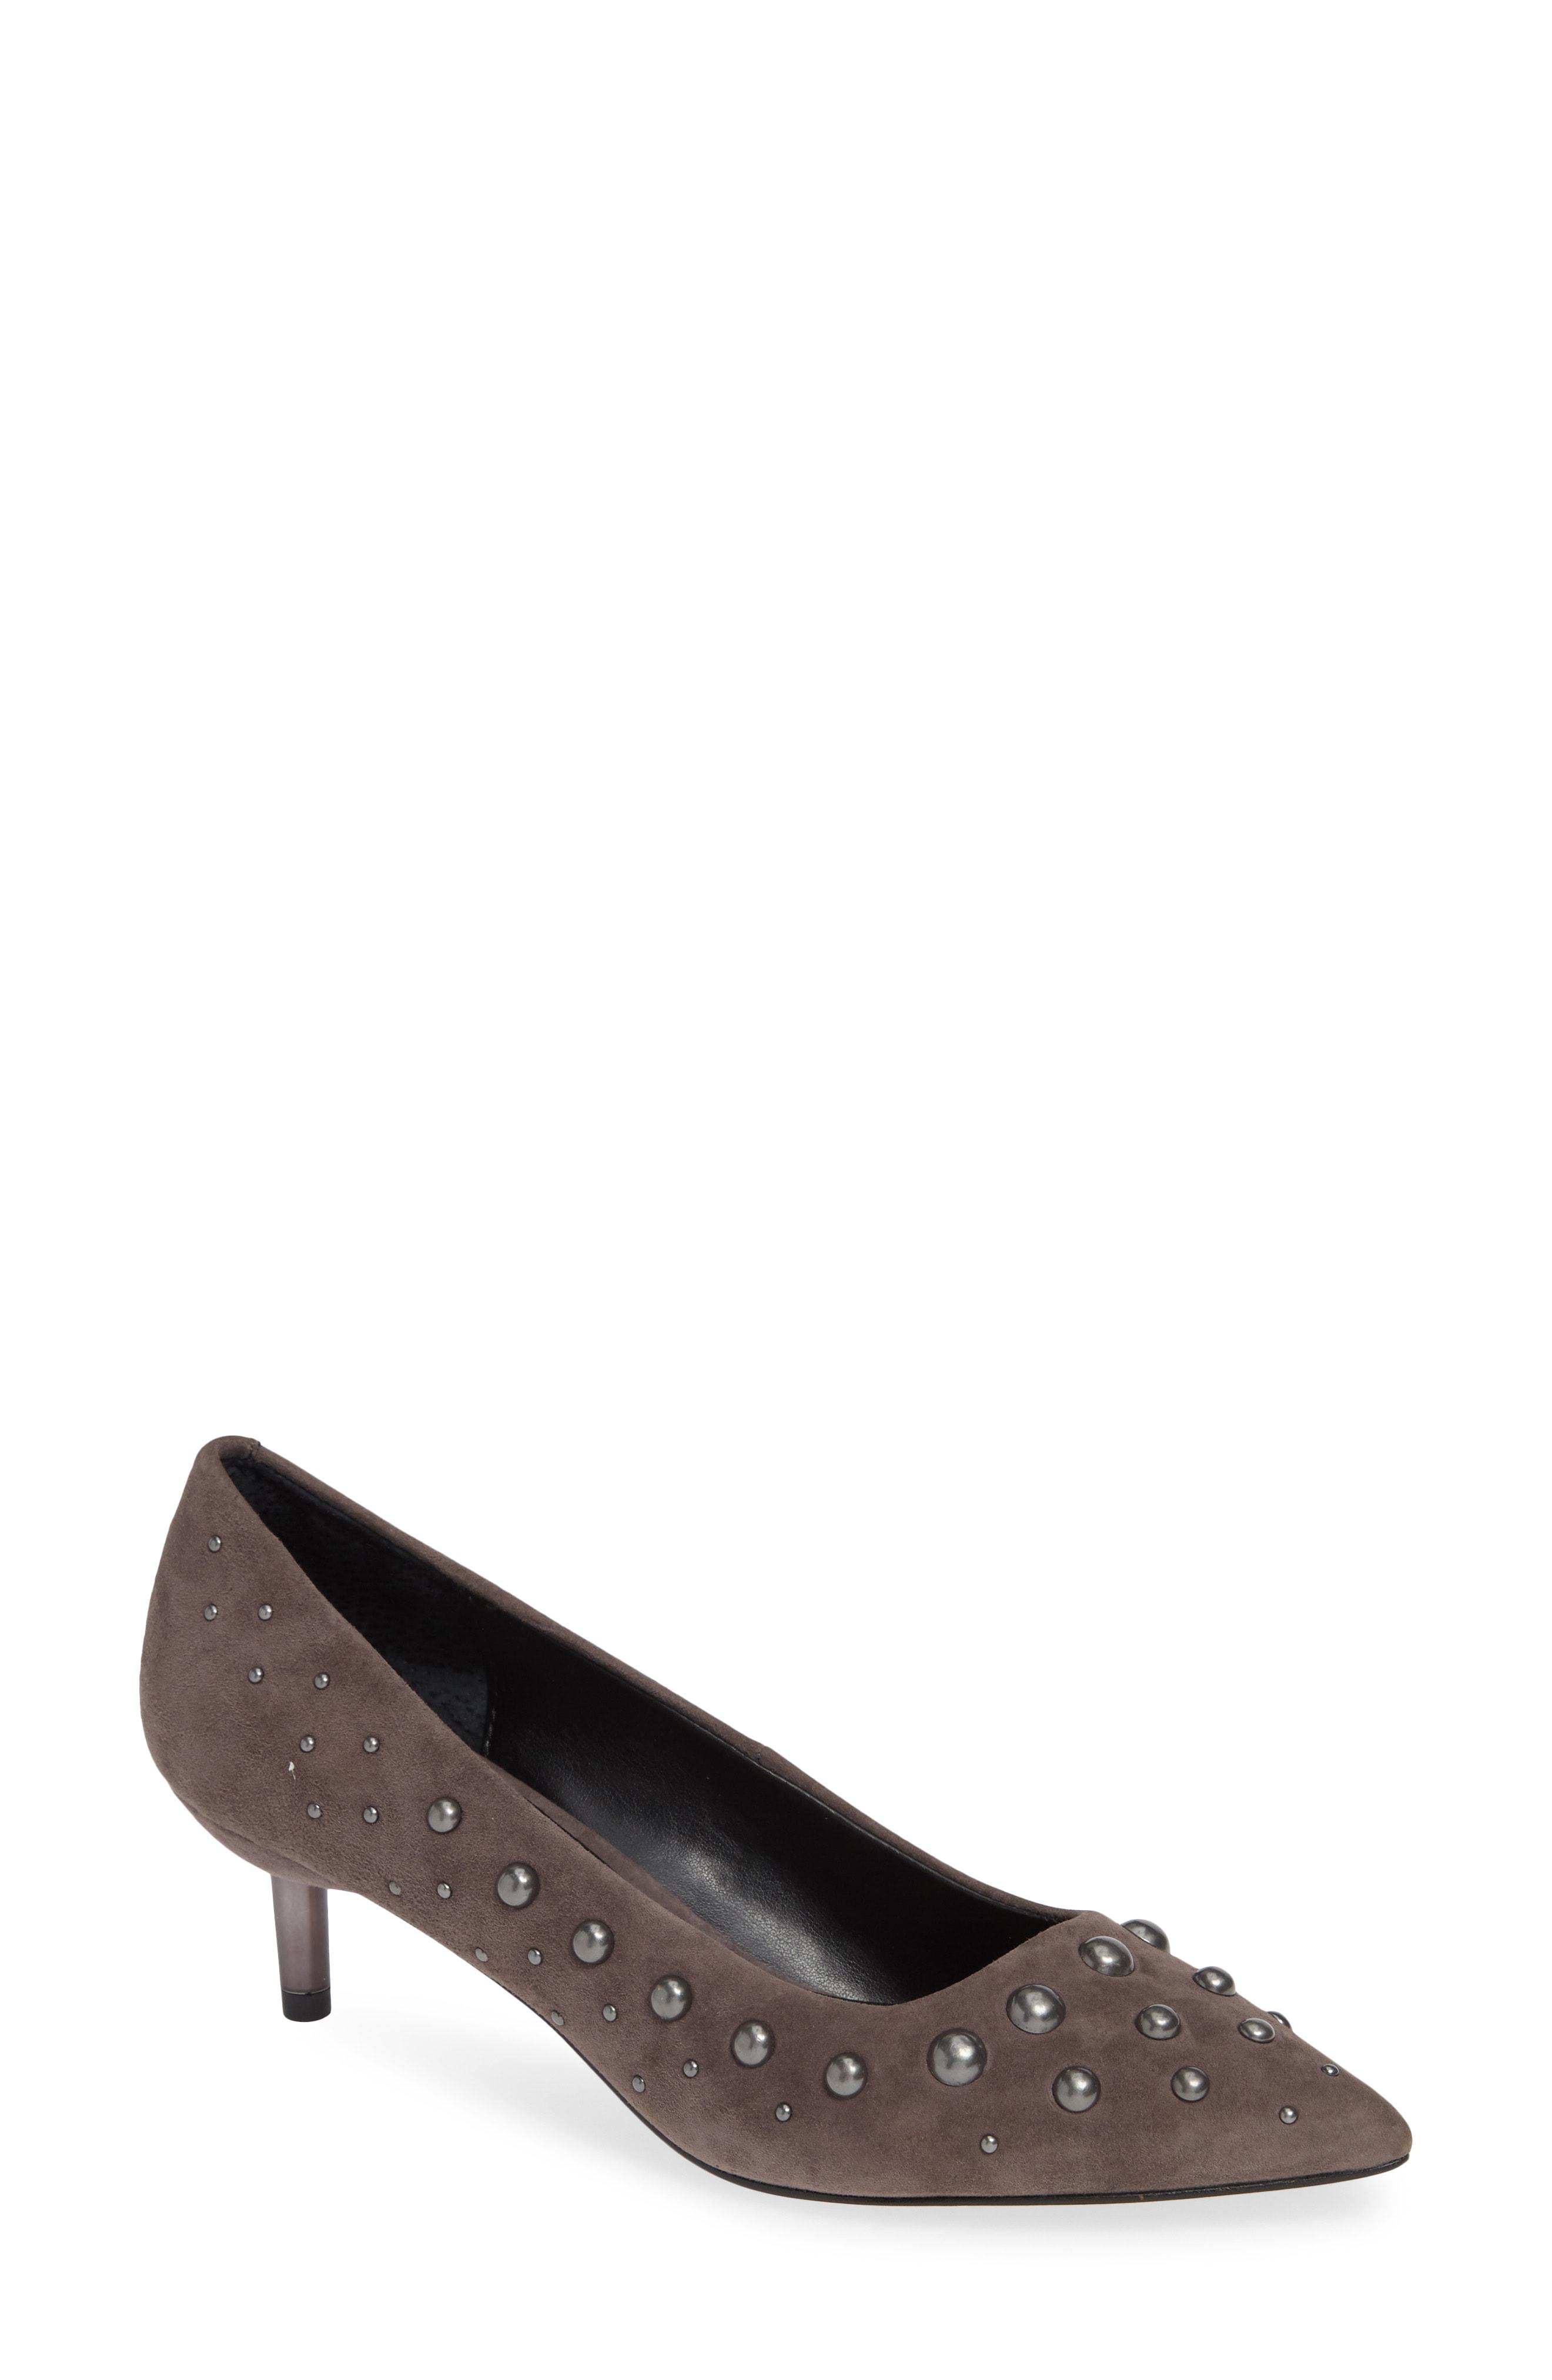 76d80804832 Lyst - Donald J Pliner Bazie Studded Pump in Gray